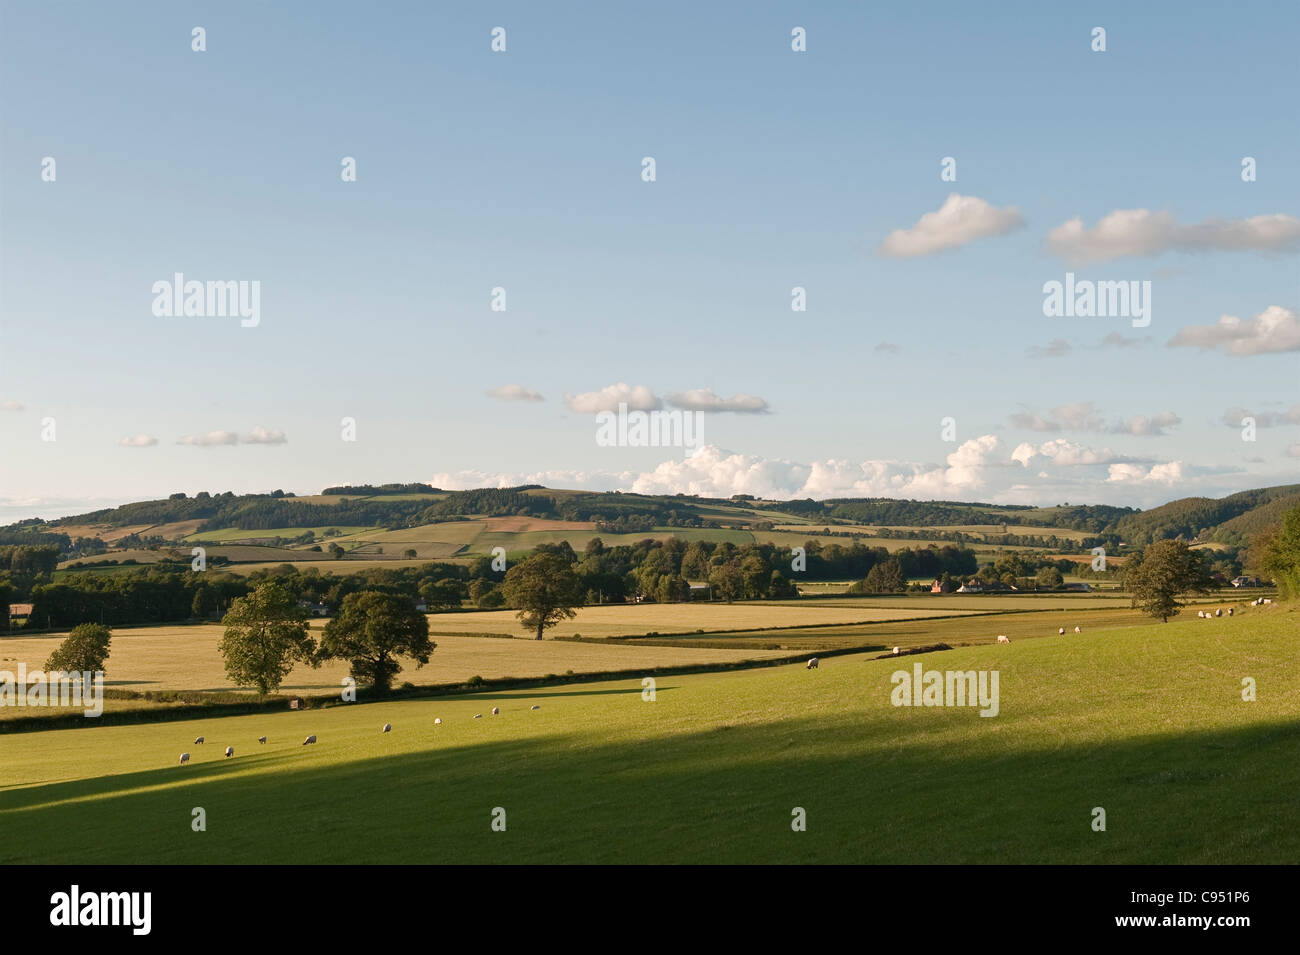 View from Herrock Hill on the Offa's Dyke Path, looking towards Knill and Presteigne - Stock Image